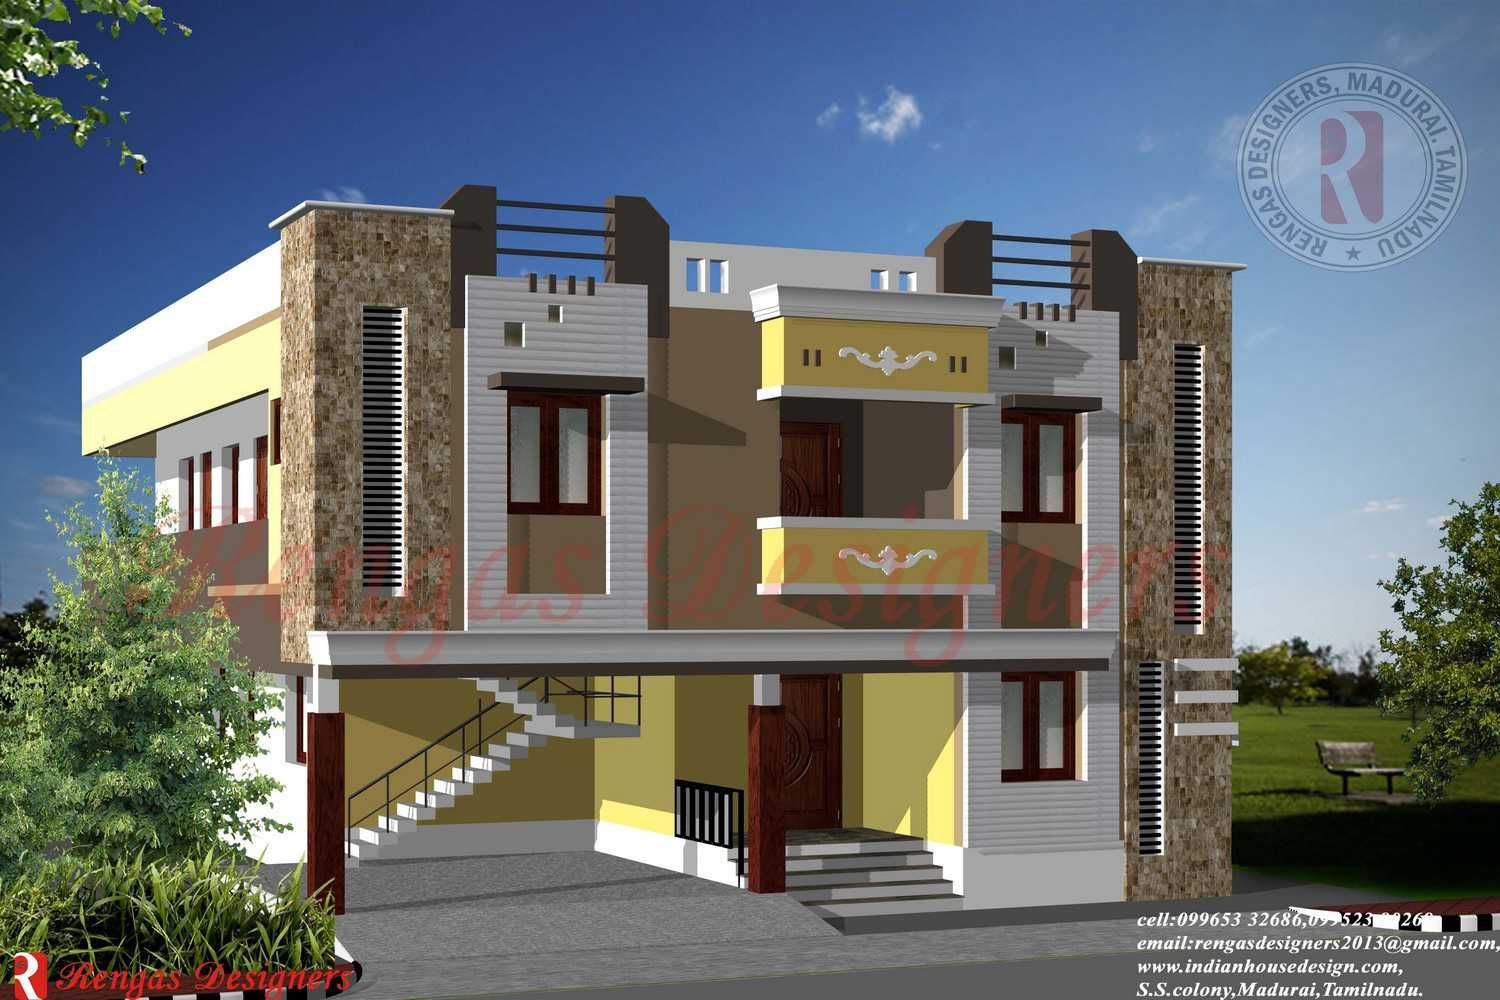 Parapet wall designs google search residence for Best house designs indian style